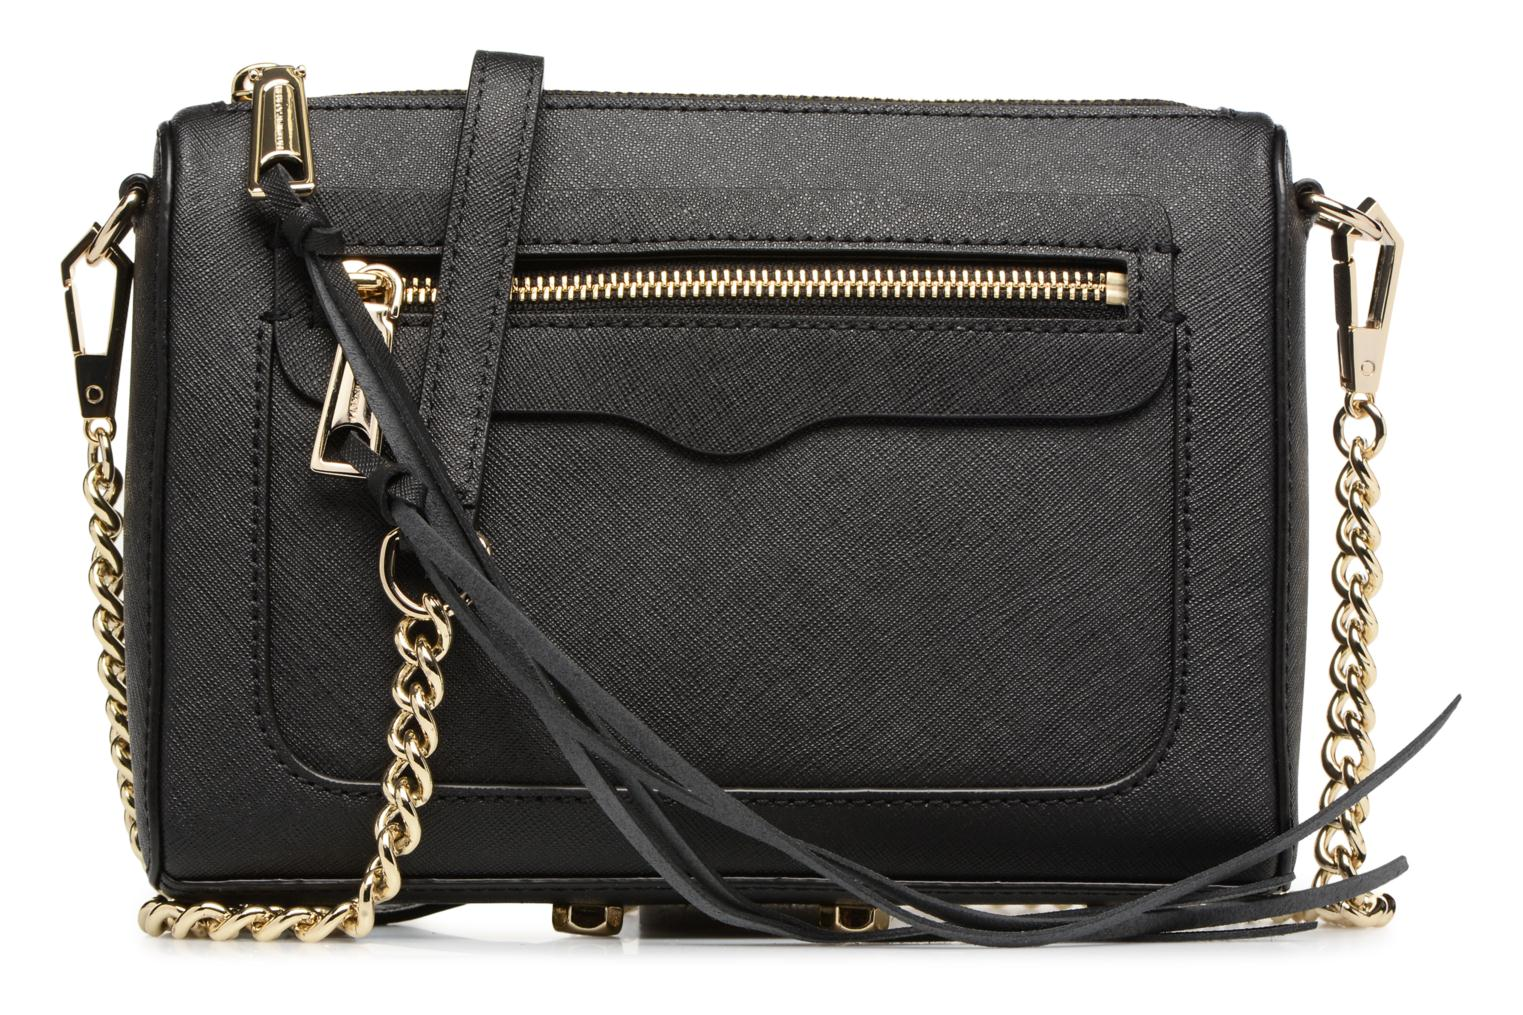 SAFFIANO AVERY CROSSBODY Black